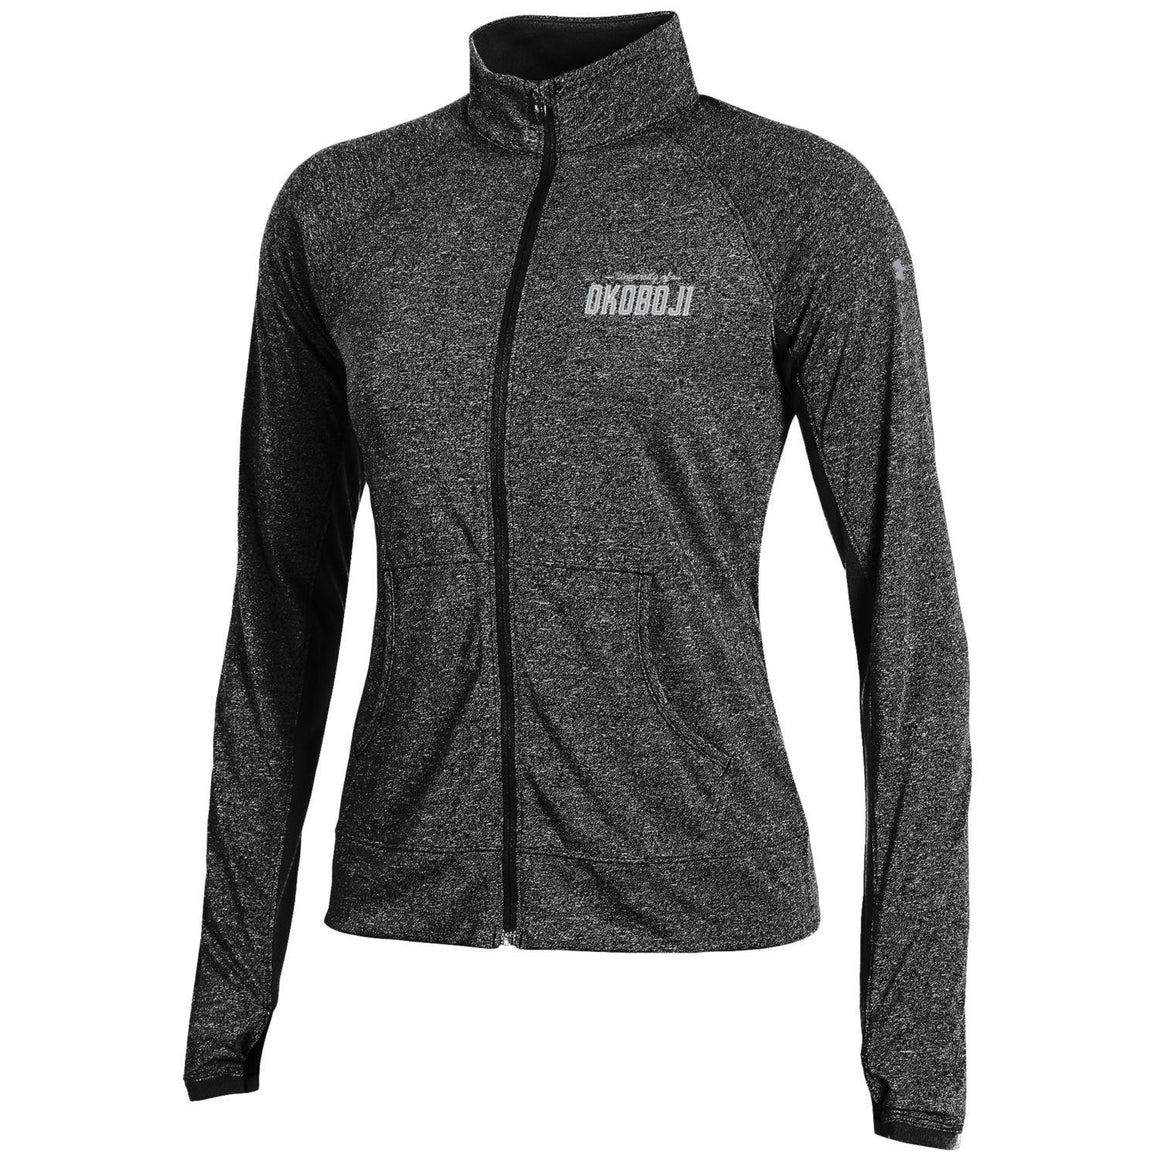 Ladies Ultimate Tech Limitless Under Armour Full Zip-Black